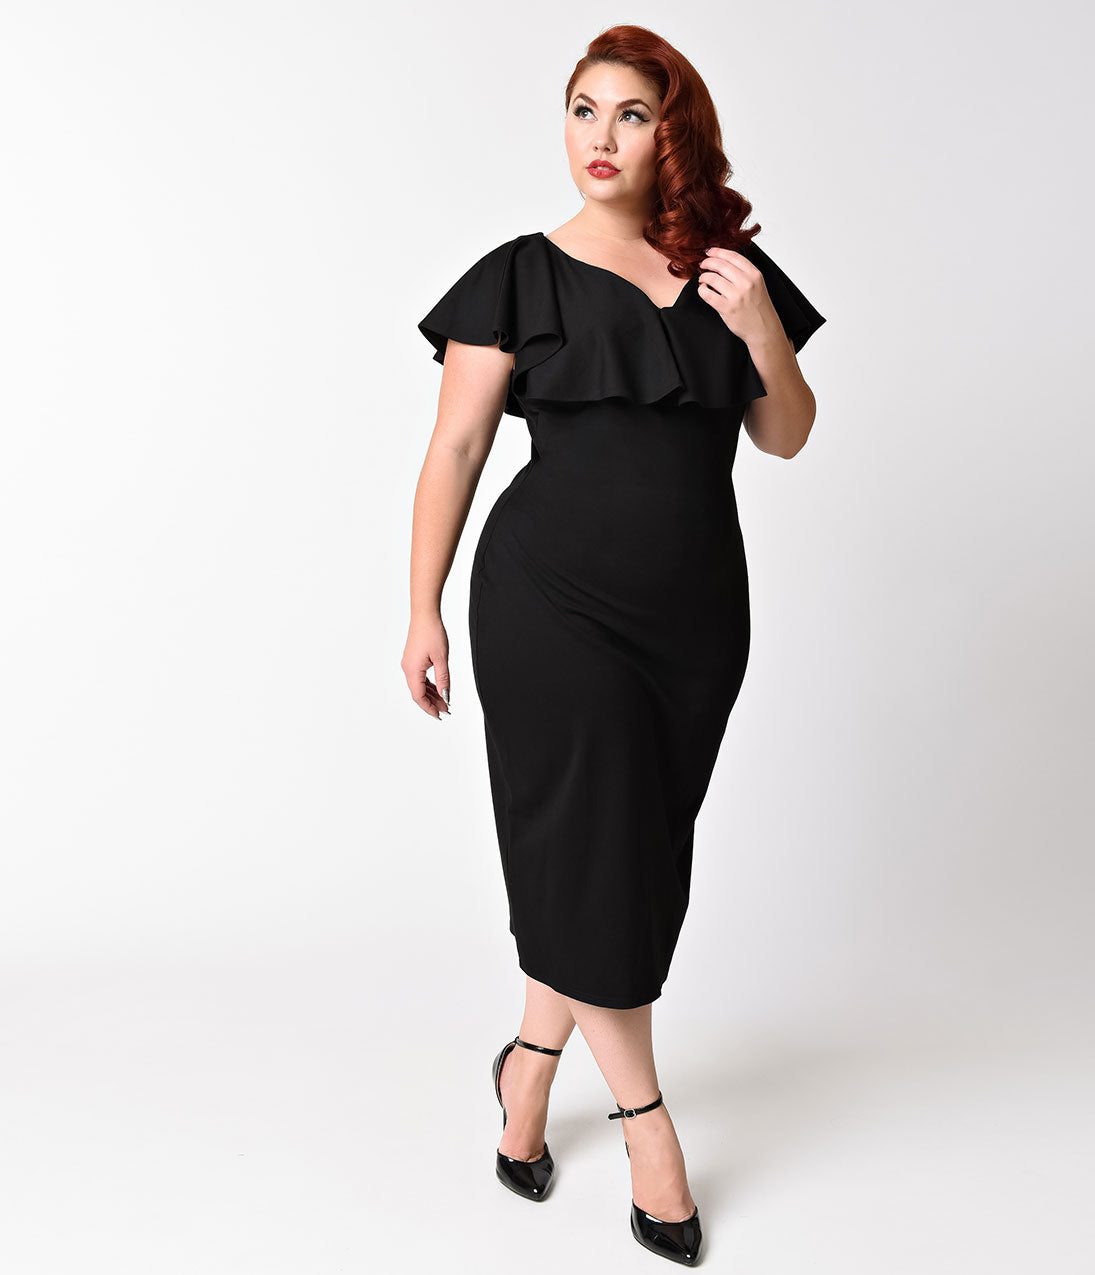 1940s Evening, Prom, Party, Cocktail Dresses & Ball Gowns Unique Vintage Plus Size Black Knit Draped Sophia Wiggle Dress $59.00 AT vintagedancer.com